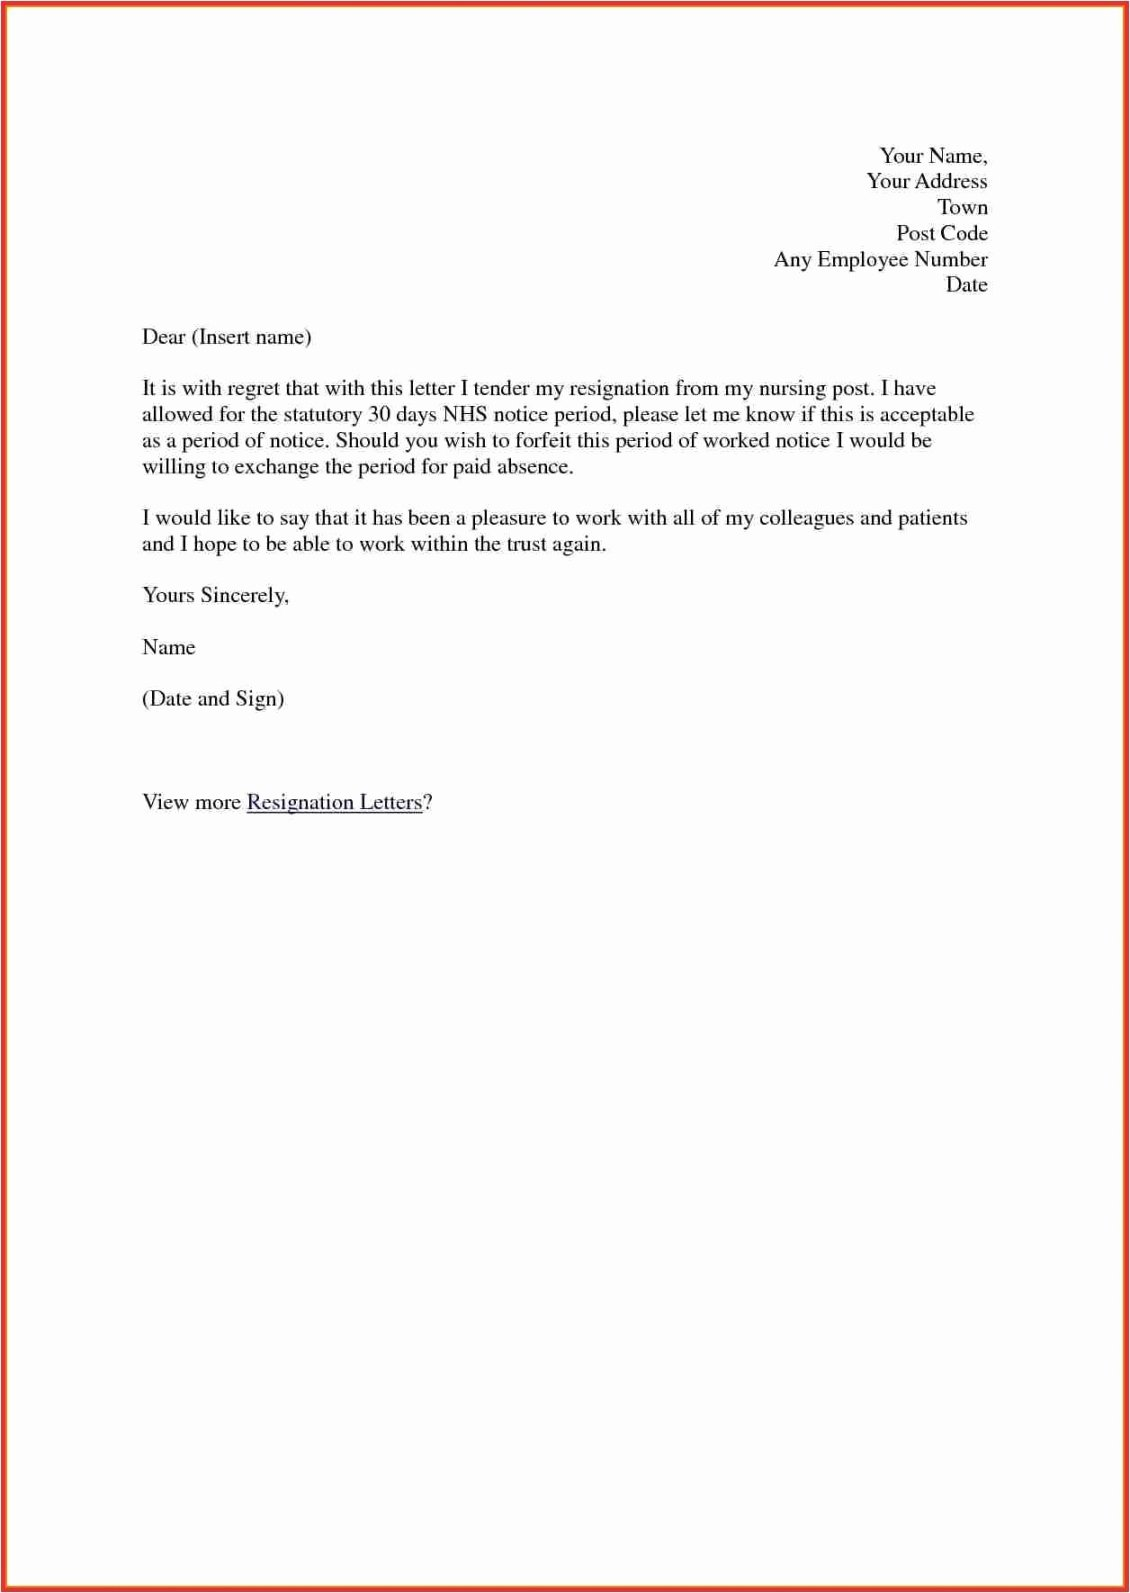 Nursing Resignation Letter Template Unique Nursing Resignation Letter Template